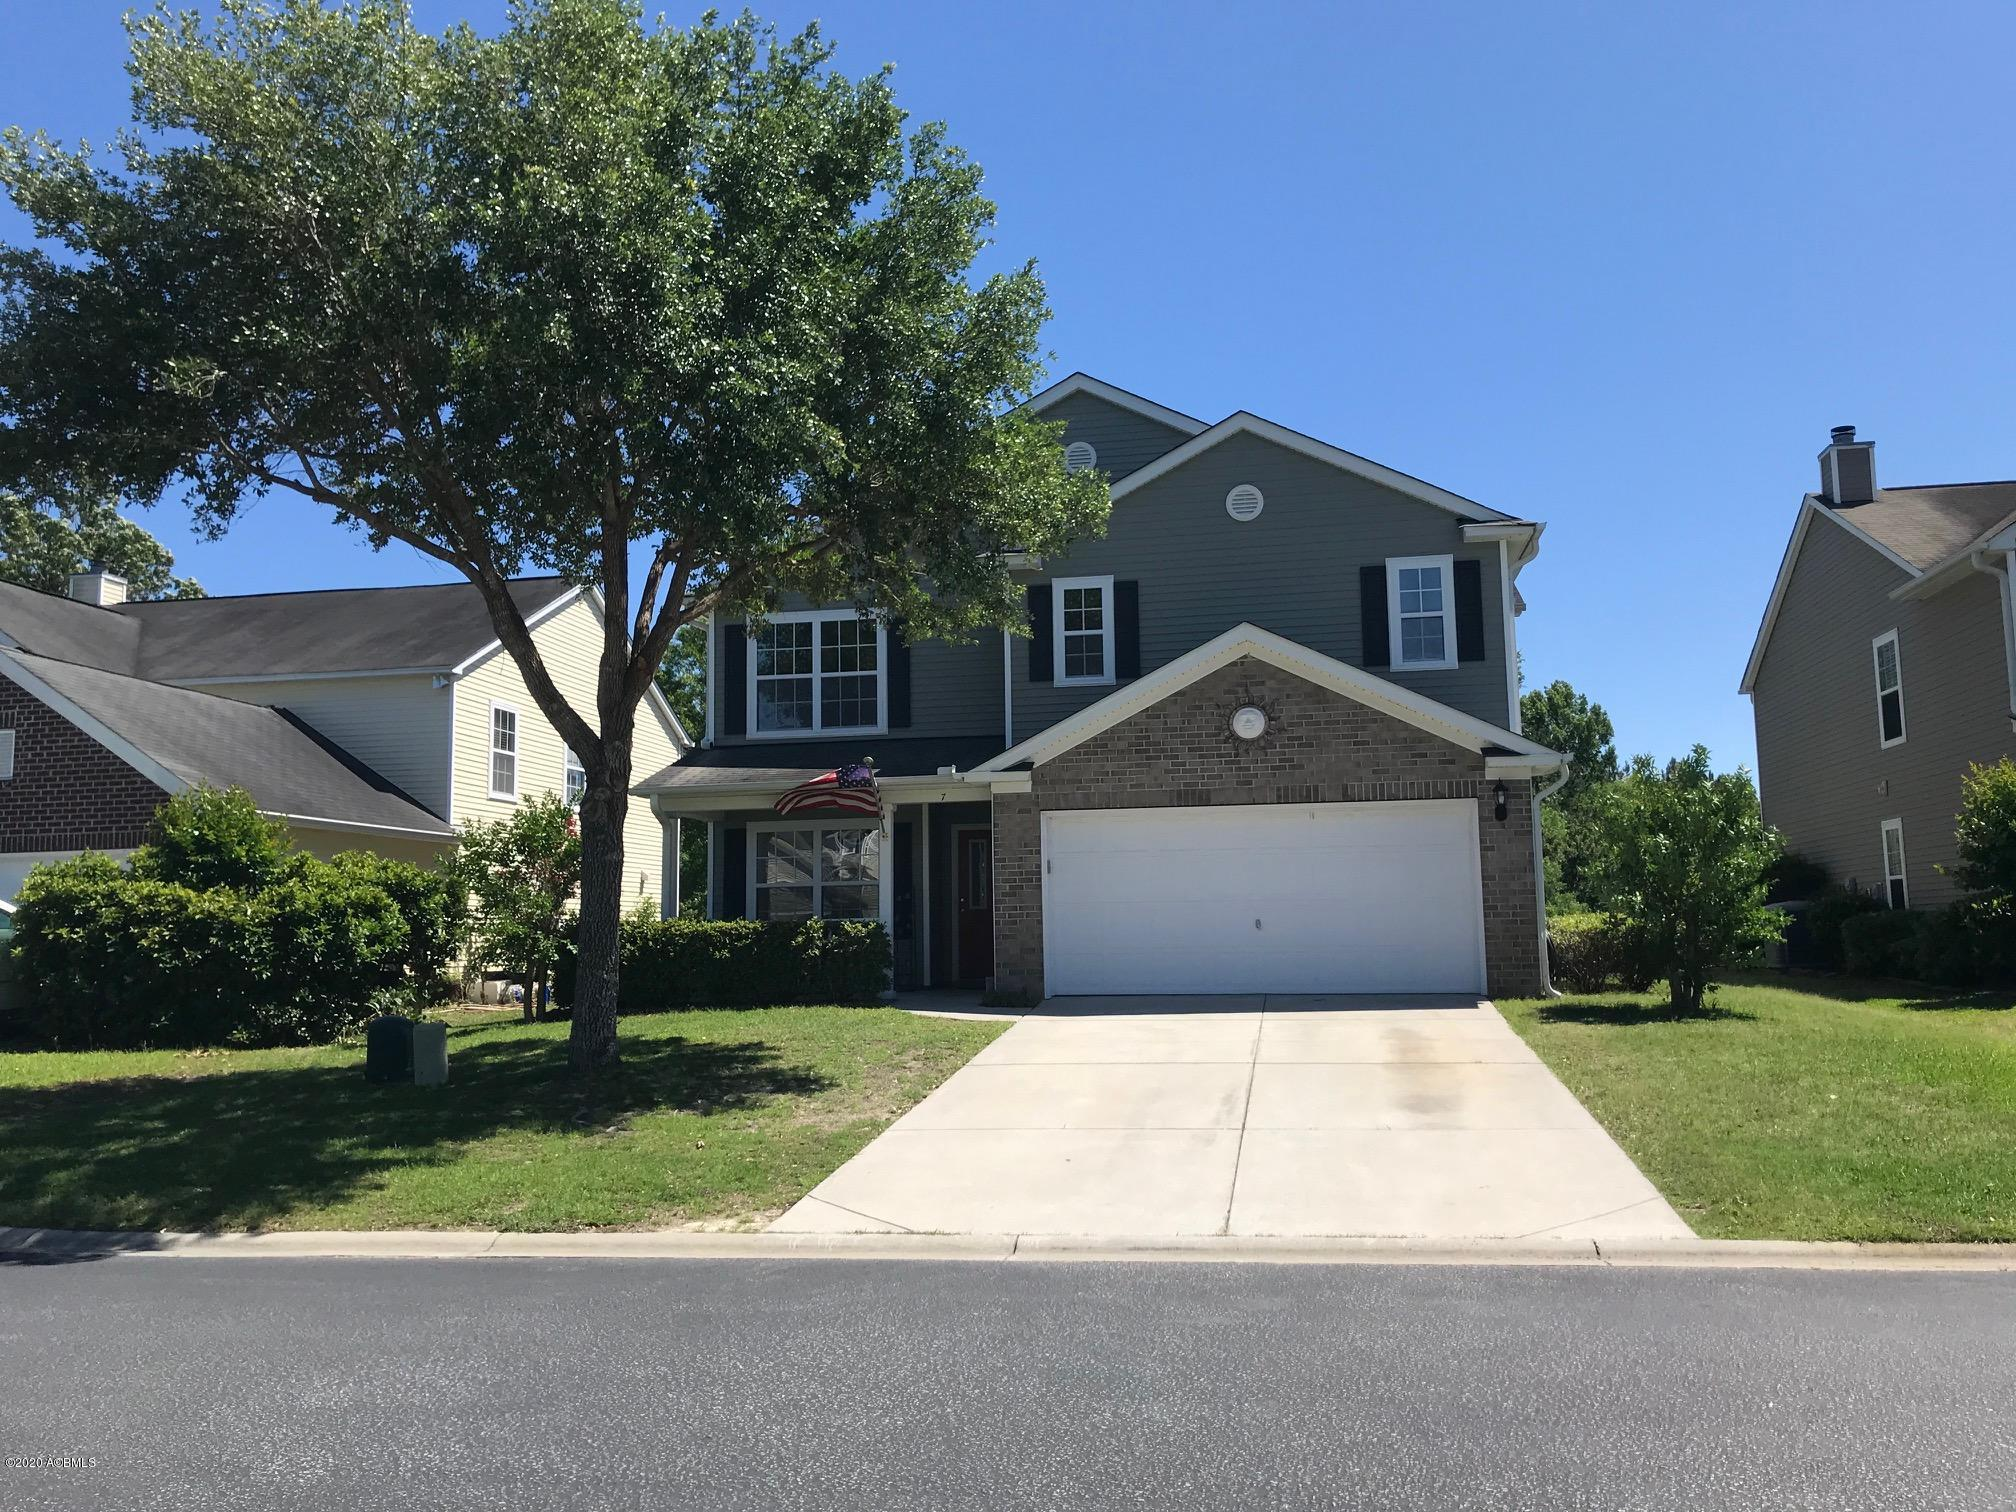 Photo of 7 Saluda Way, Beaufort, SC 29906